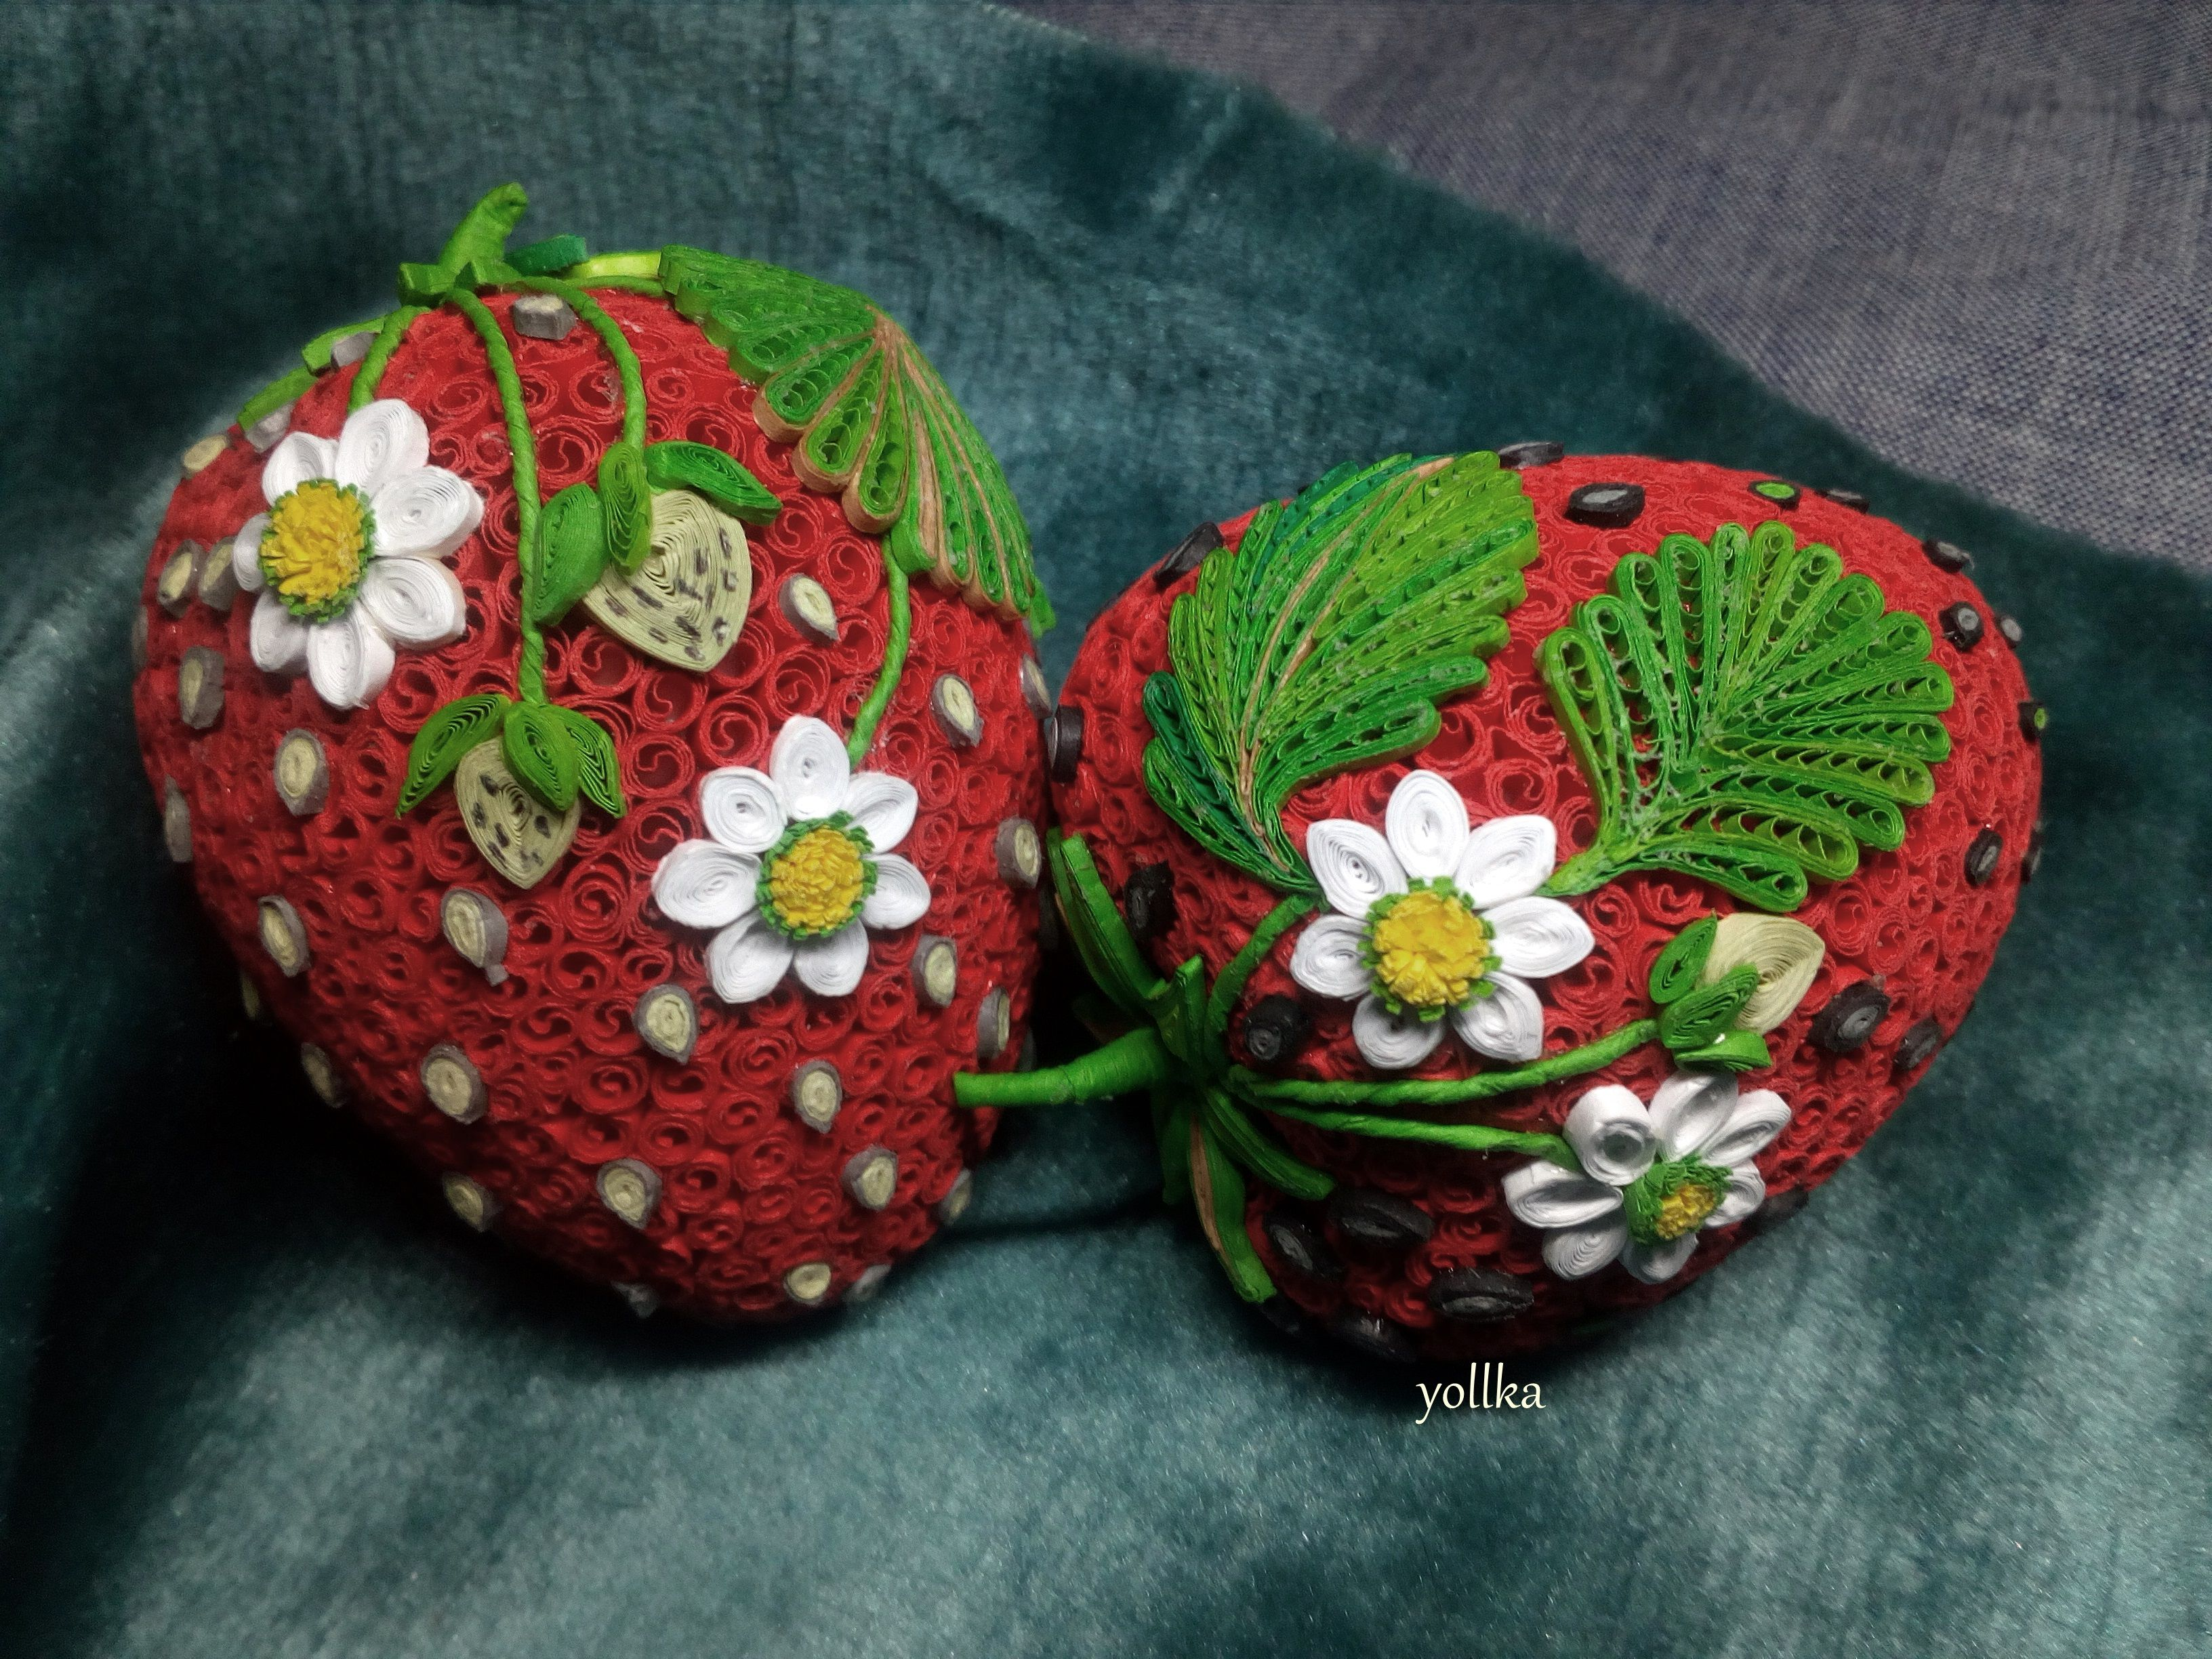 Pin By Mariola Zywicka On Quilling Quilling Easter Coin Purse